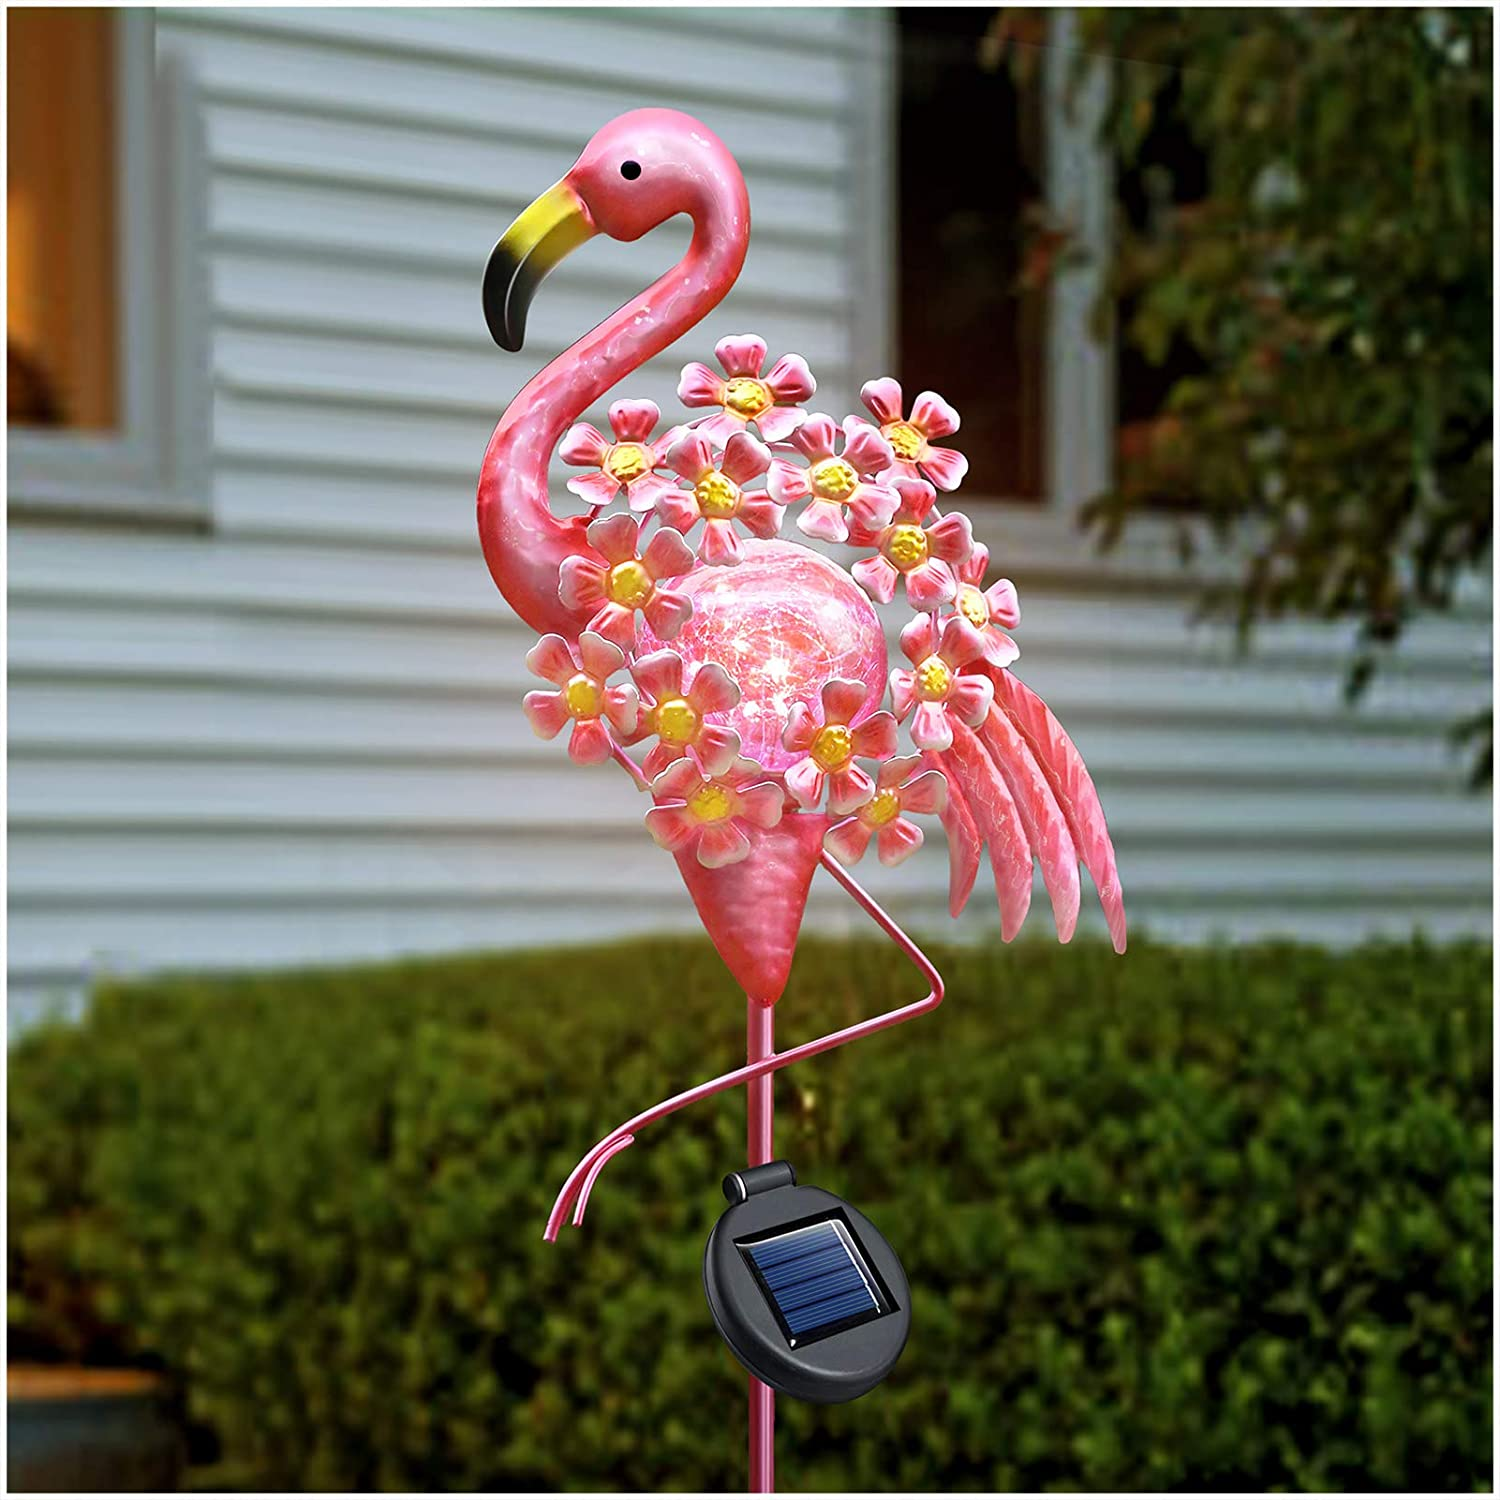 DenicMic Flamingo Solar Lights Outdoor Decor, Garden Stake Lights Glass Metal Flamingo Yard Art Decorations, Christmas Flamingo Waterproof for Patio Landscape Lawn Pathway Courtyard Flowerbed 42 inch